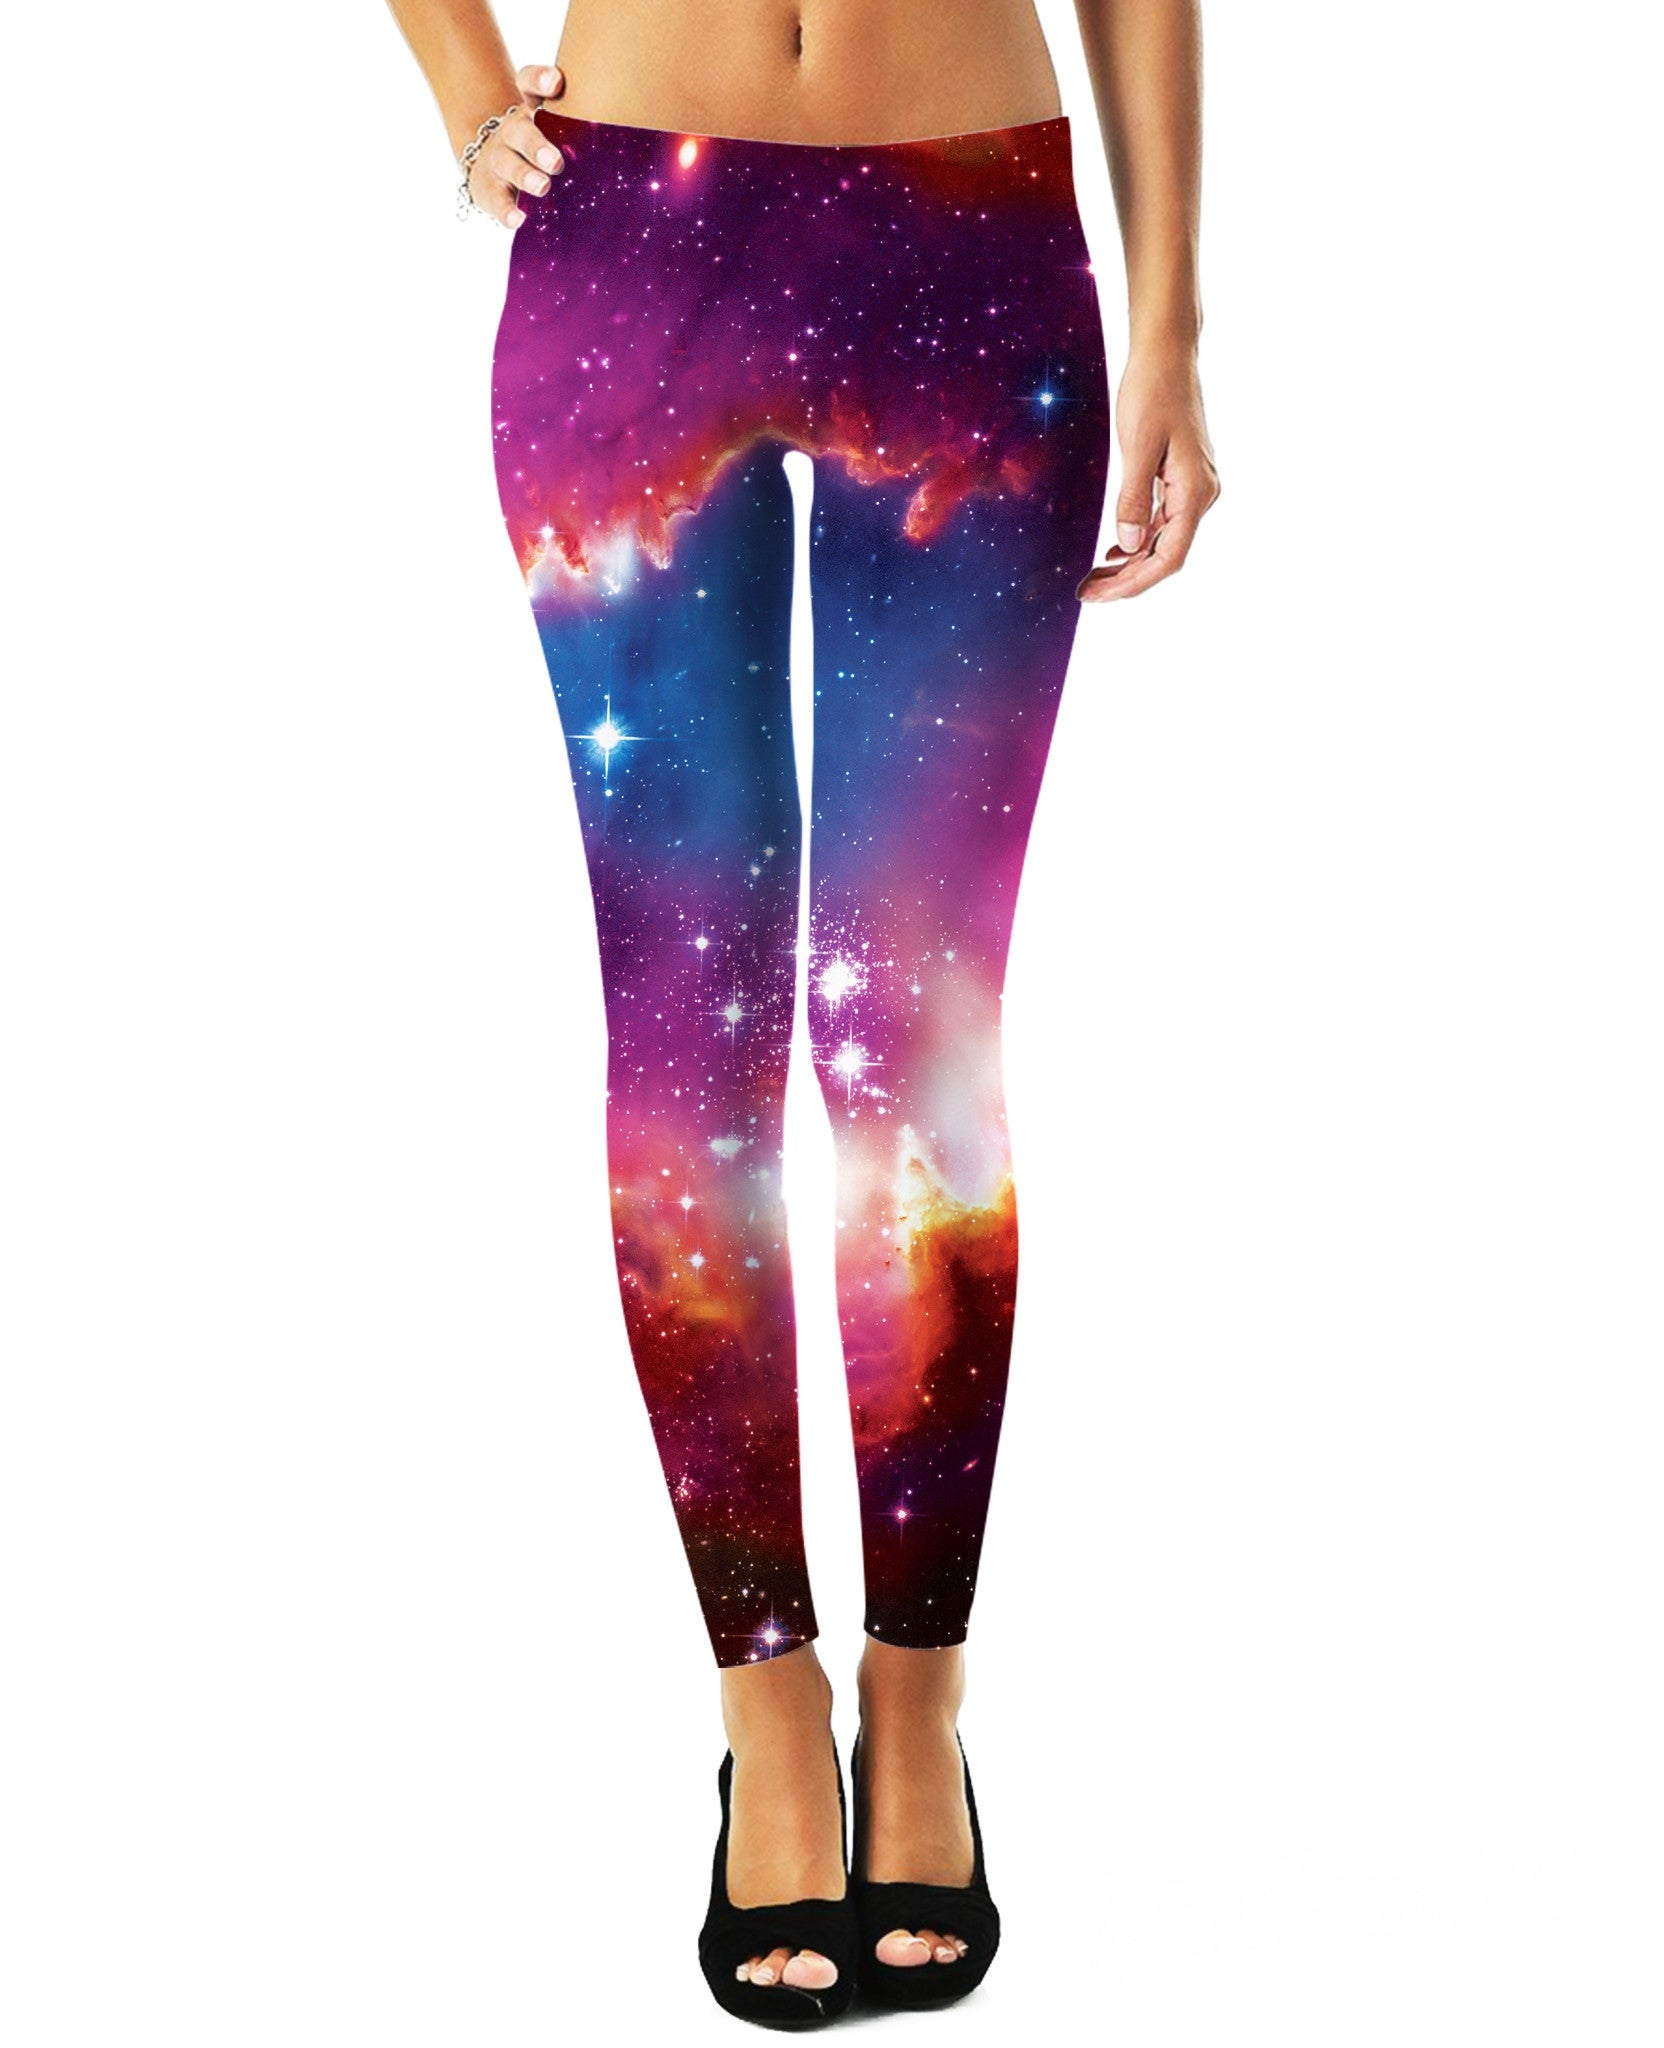 Cosmic Forces Leggings